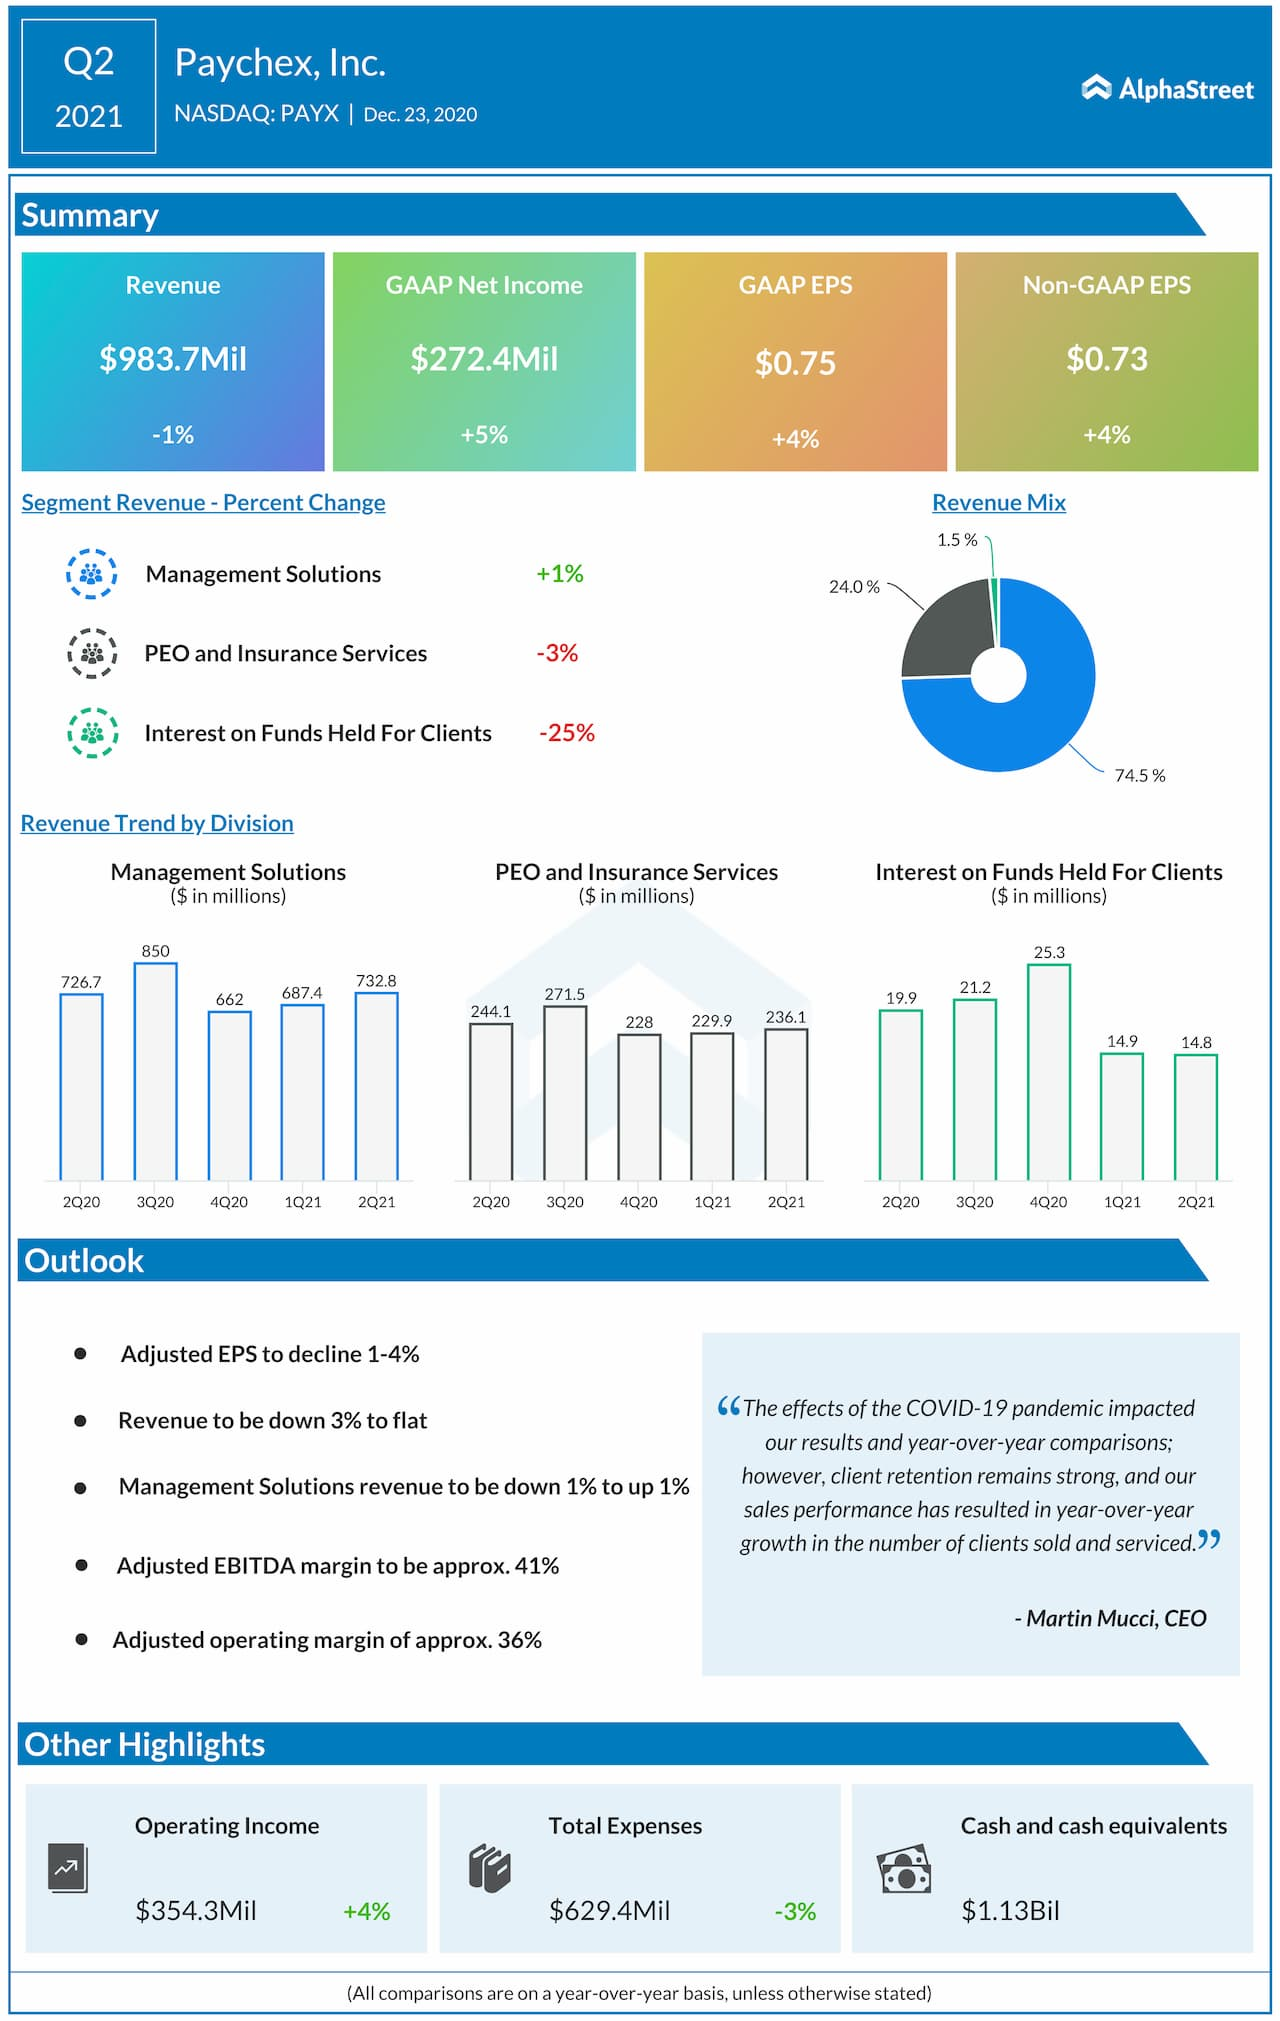 Paychex Q2 2021 infographic